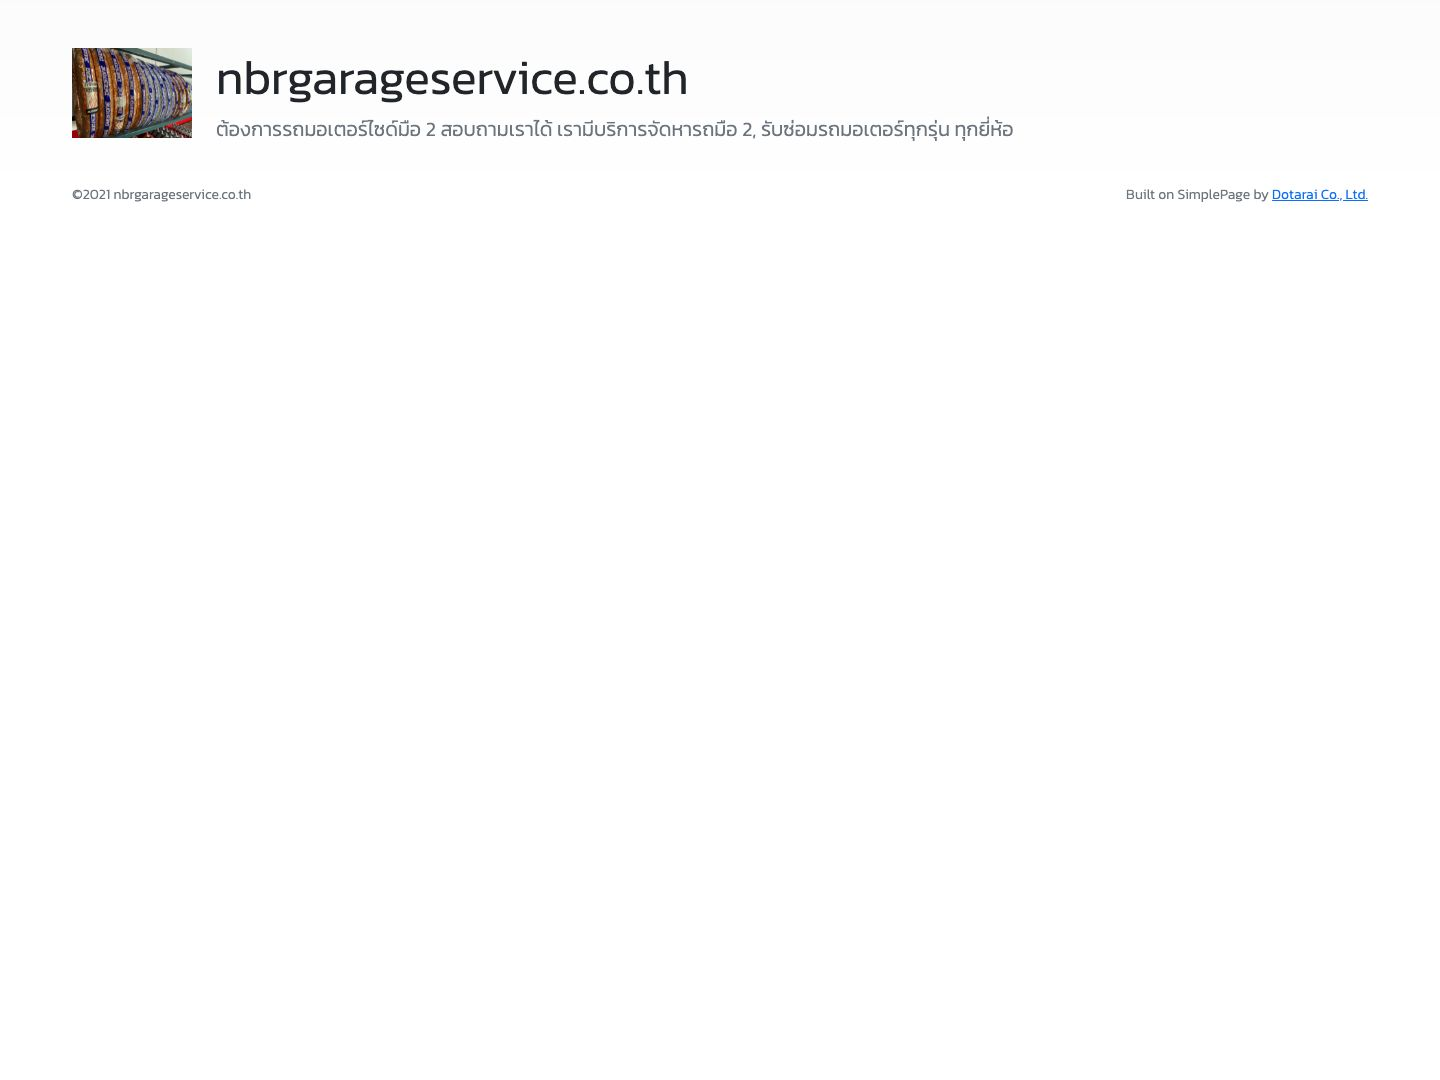 nbrgarageservice.co.th